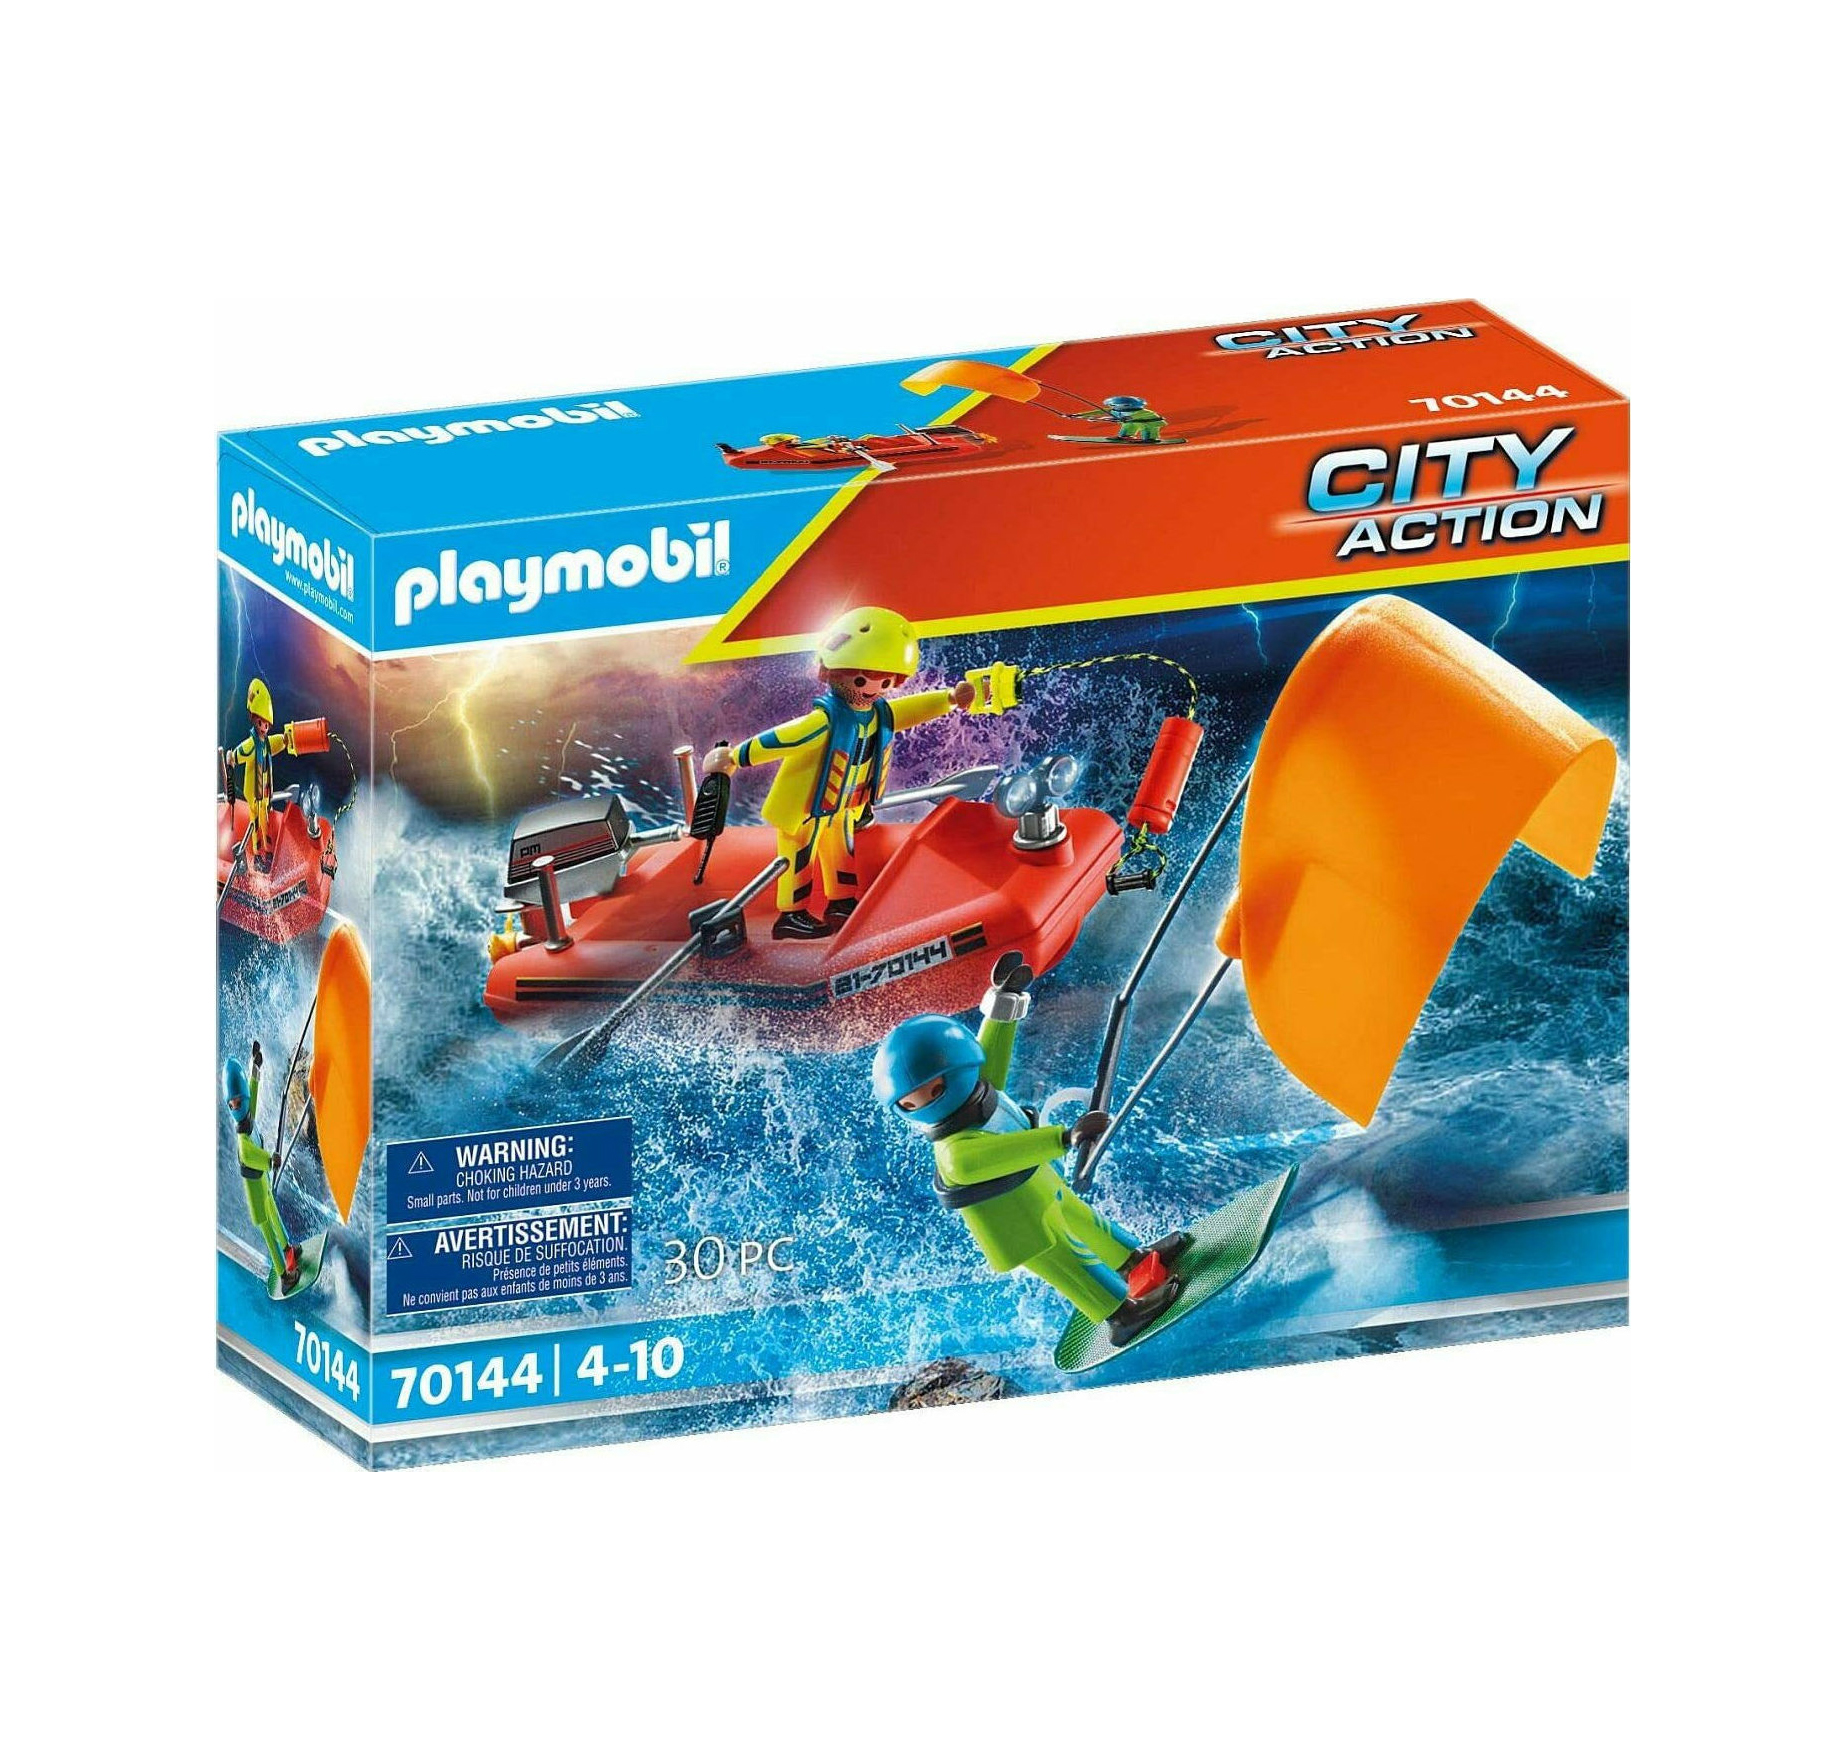 Playmobil City Action: Kitesurfer Rescue With Boat 70144